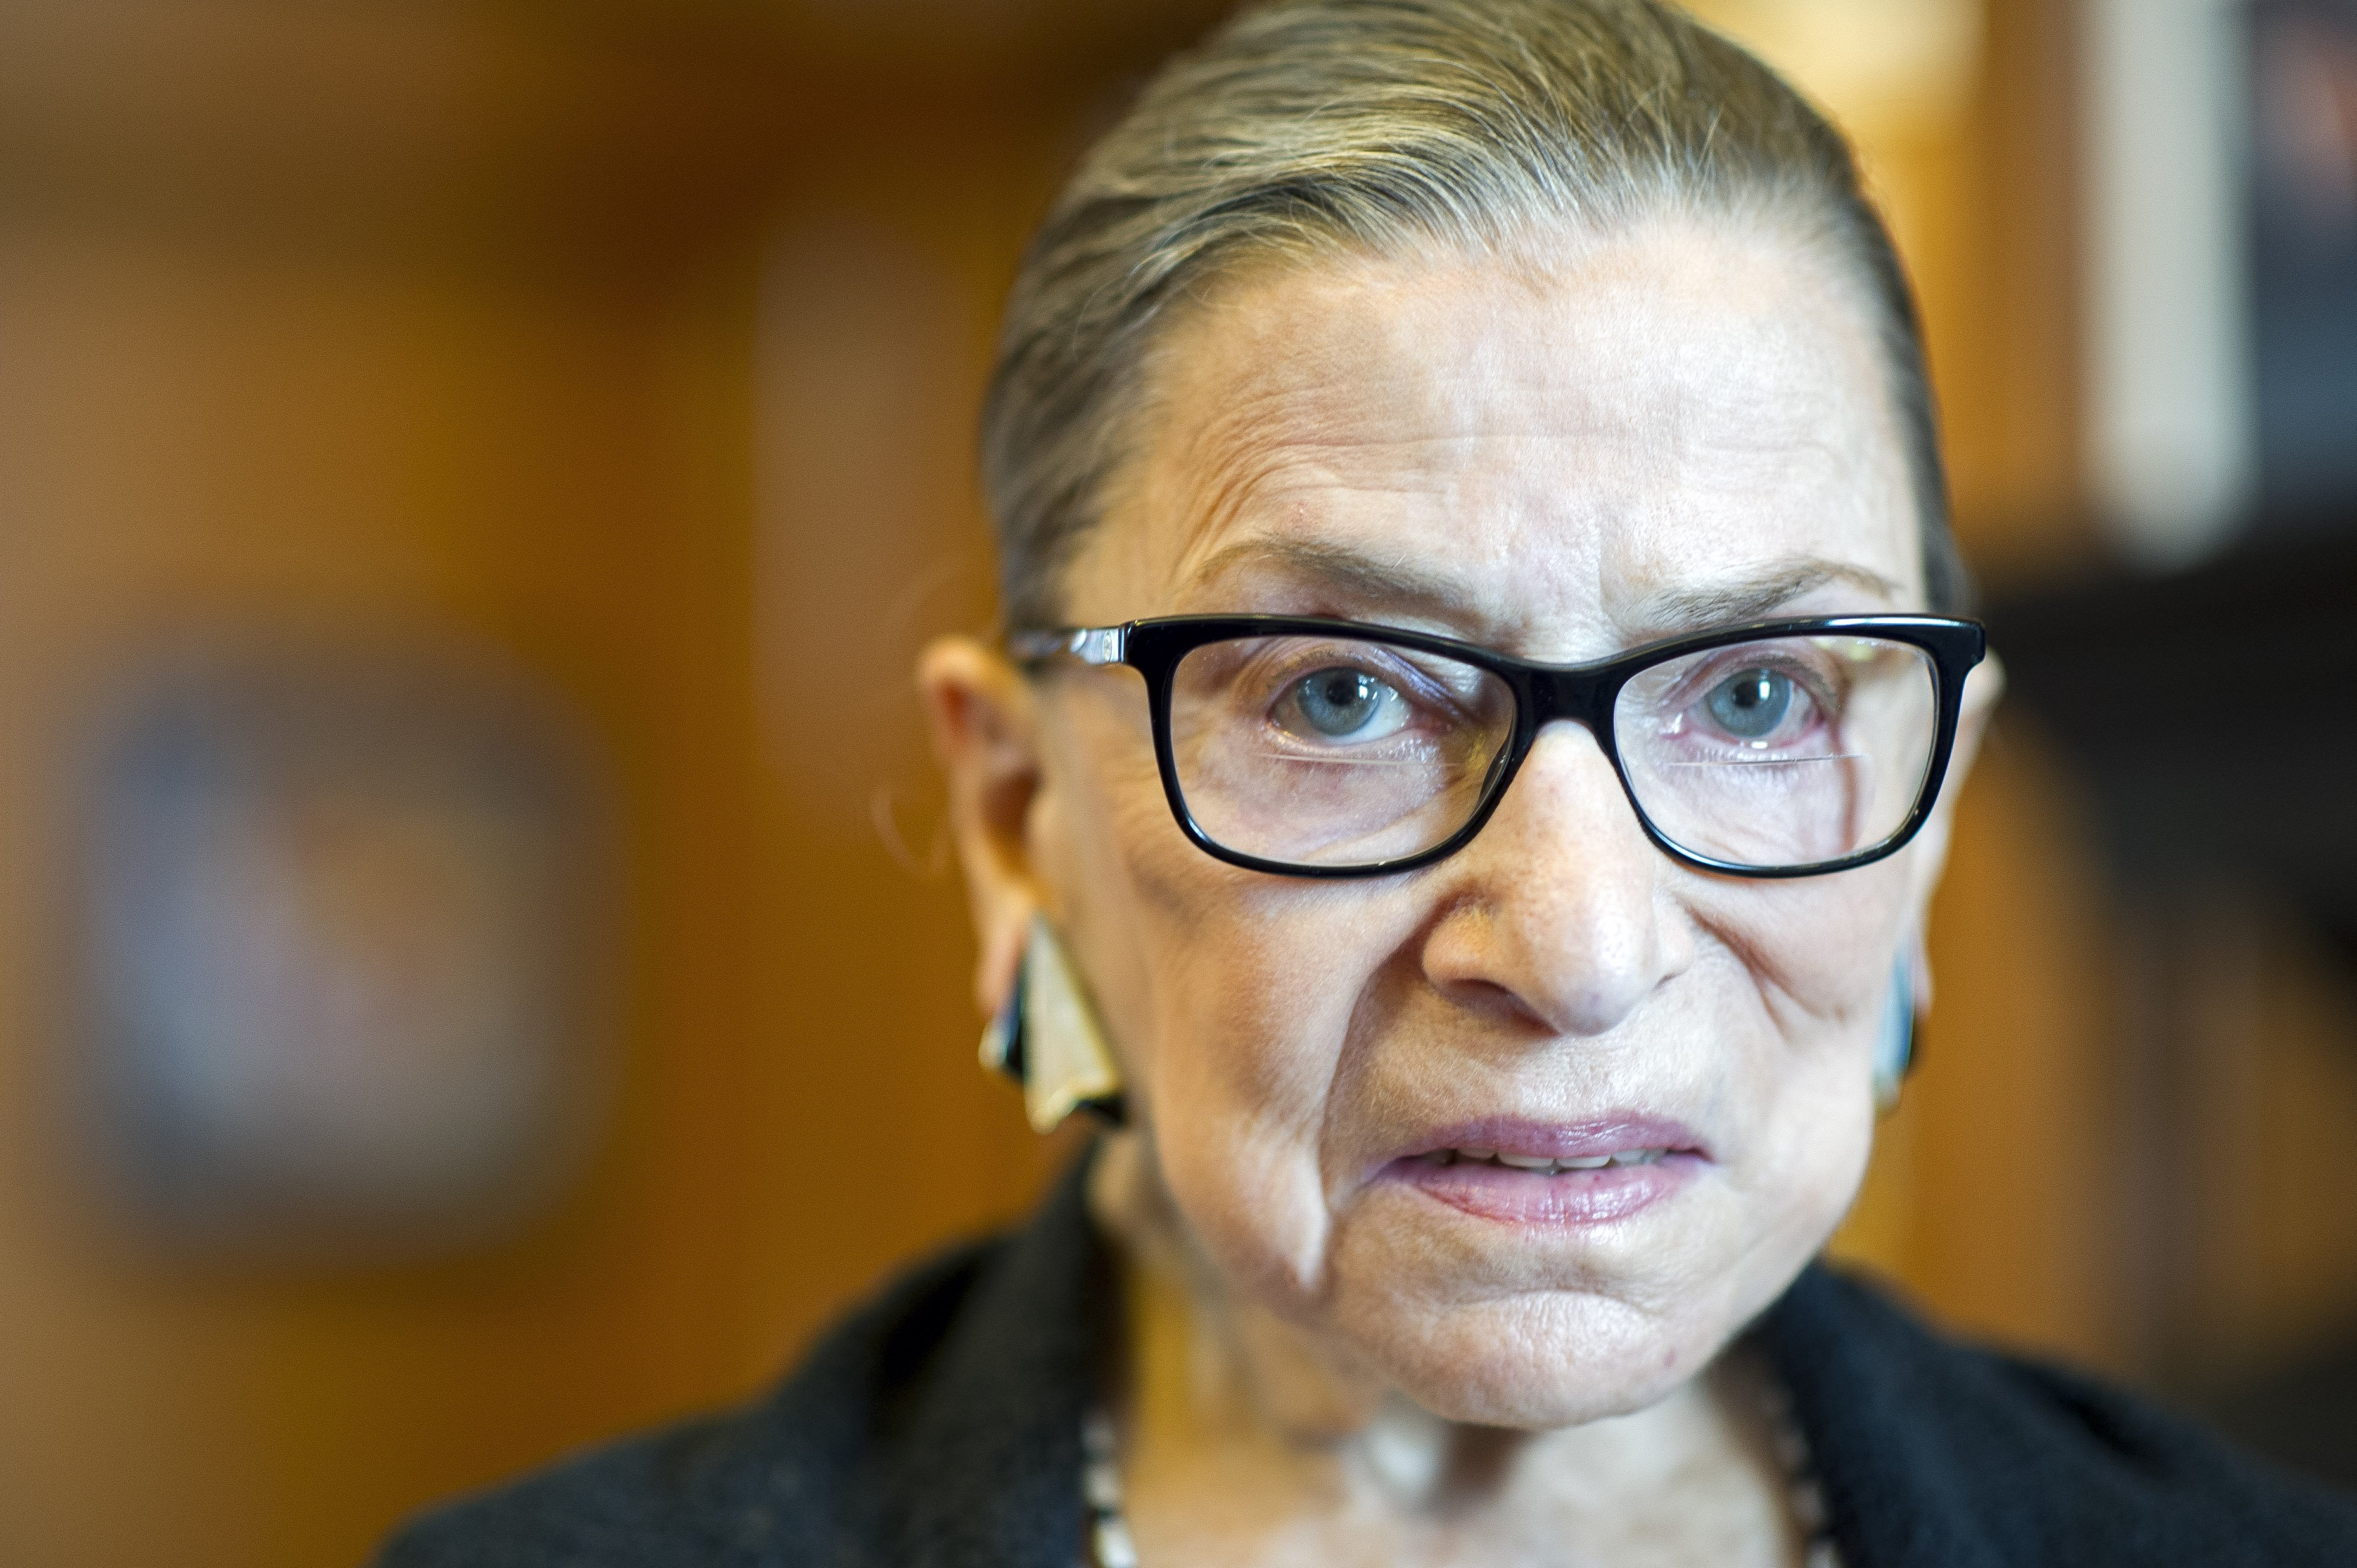 Associate Justice Ruth Bader Ginsburg in her Supreme Court chambers in Washington, July 31, 2014.